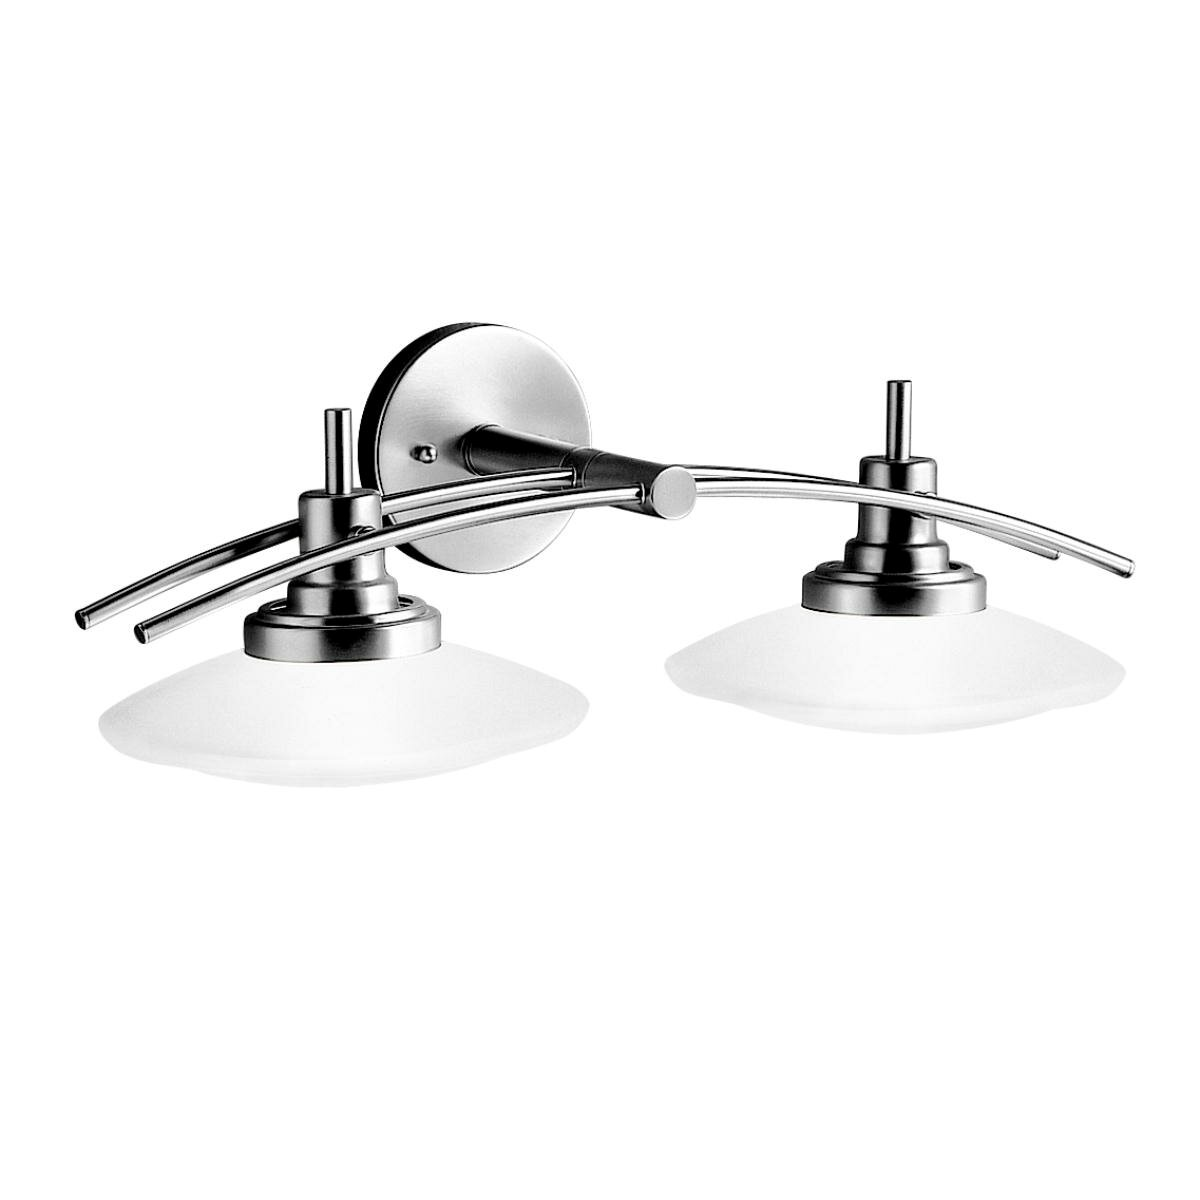 kichler bathroom lighting kichler structures 2 light vanity light amp reviews wayfair 13301